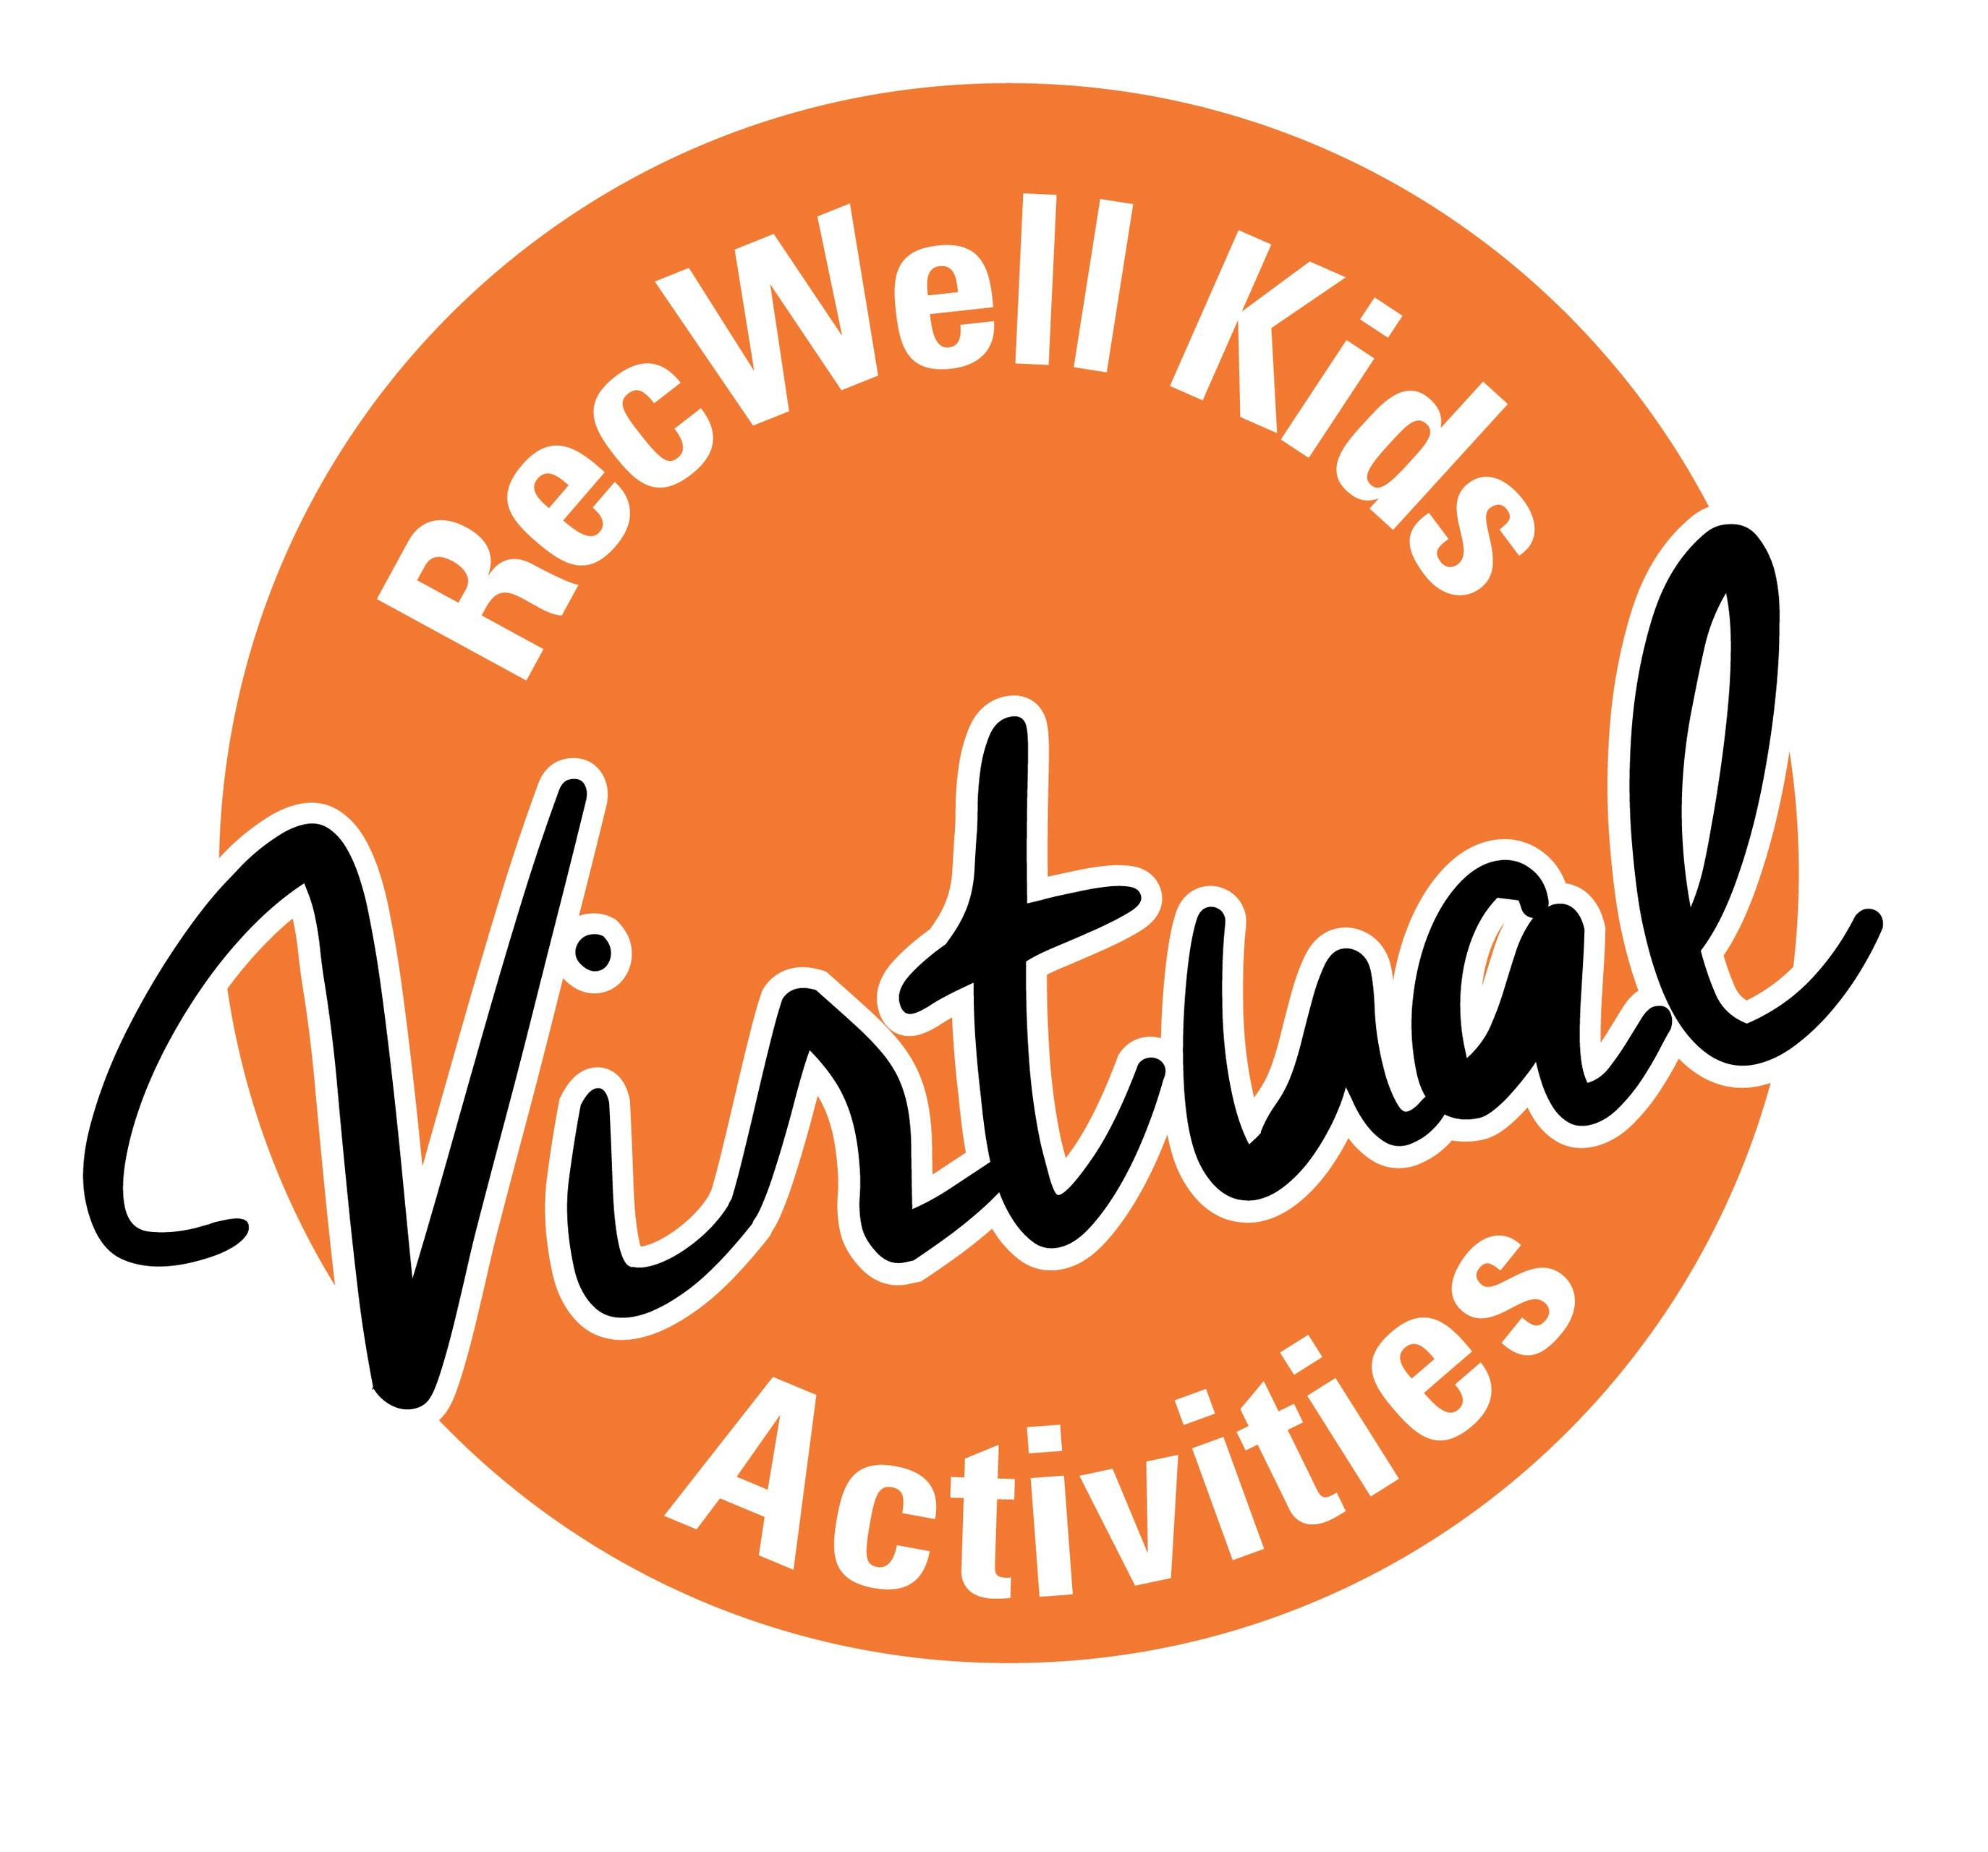 VirtualKidsActivities